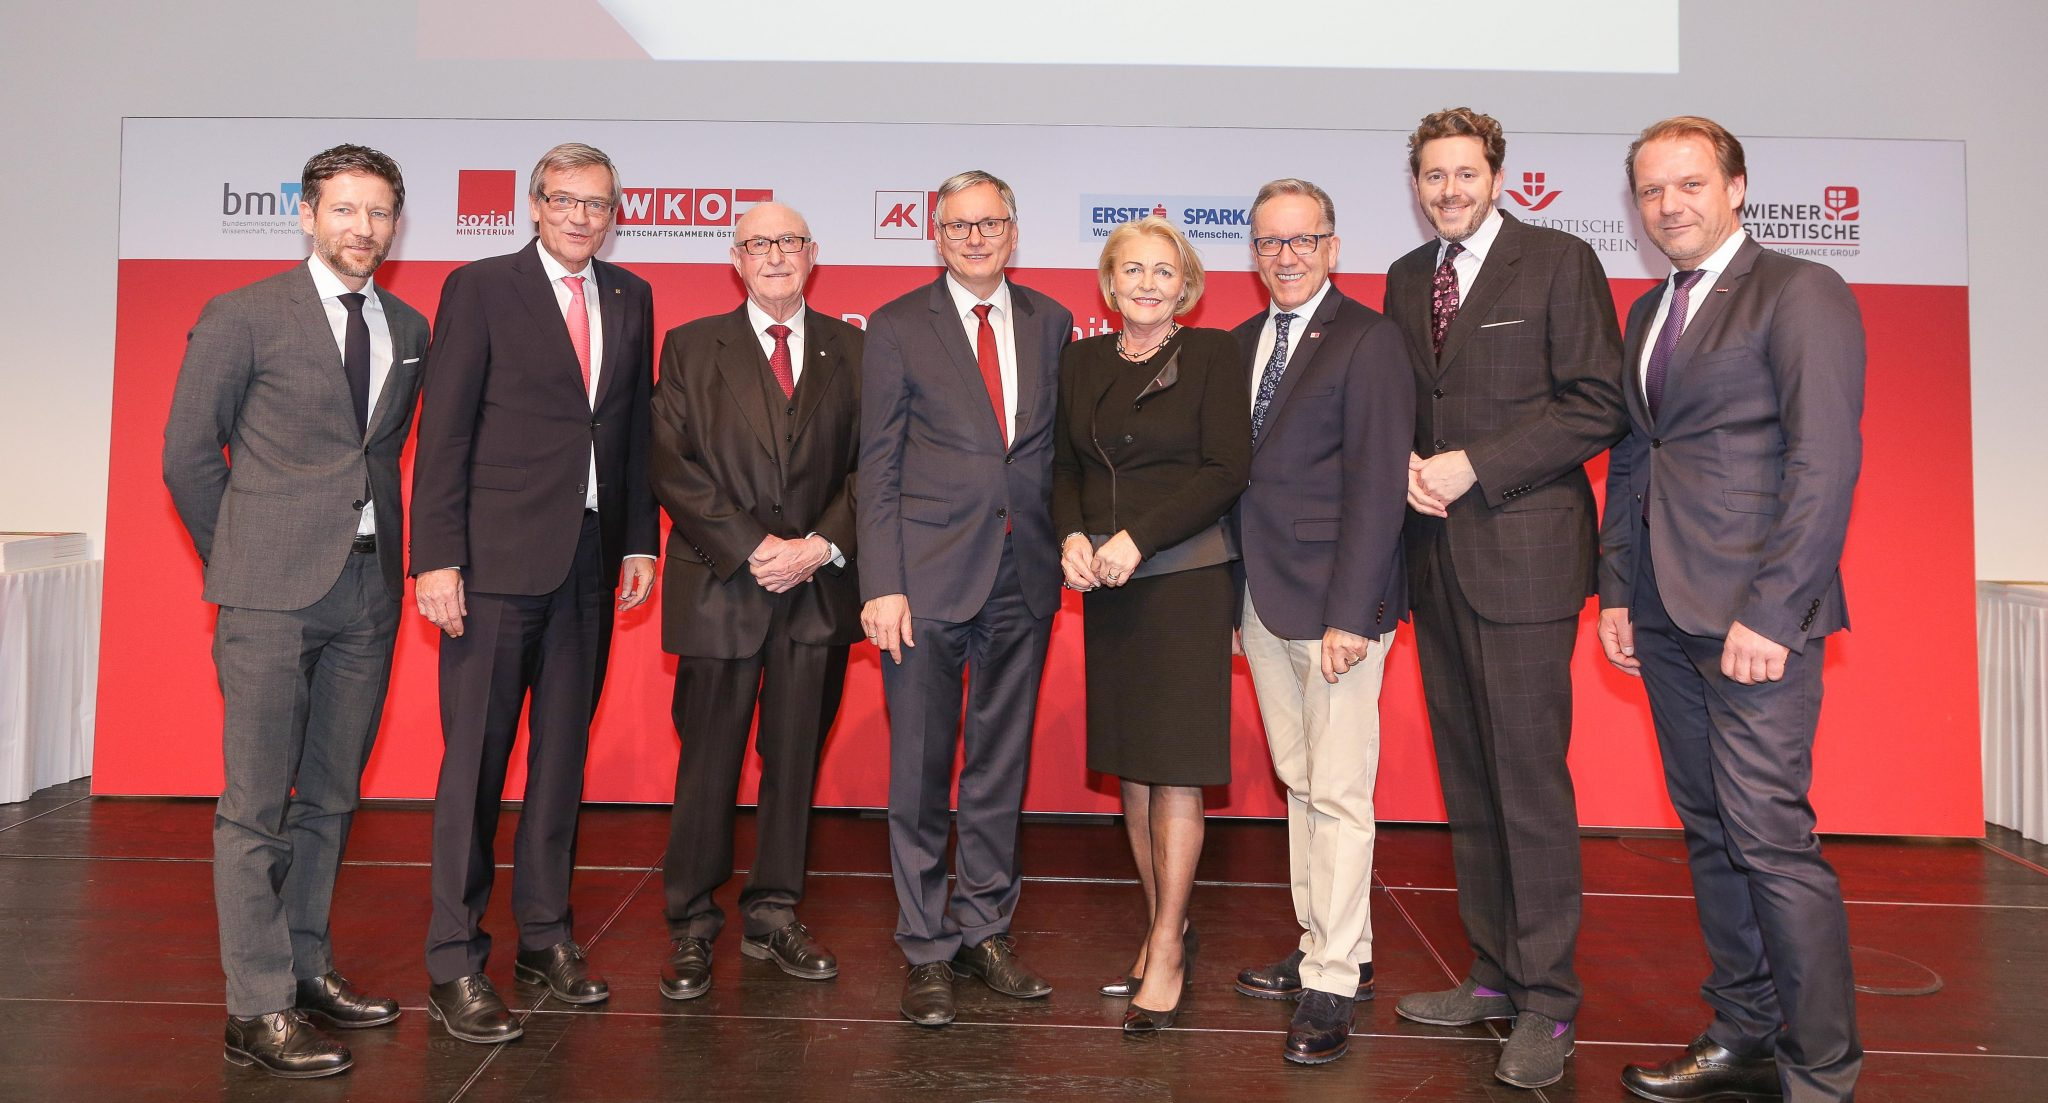 On the picture from left to right: Thomas Schaufler, chairman of the managing board of Erste Bank, Robert Lasshofer, chairman of the managing board of Wiener Städtische, Günter Geyer, president of 'PflegerIn mit Herz' and chairman of the managing board of Wiener Städtische Versicherungsverein, minister of social affairs Alois Stöger, Anna Maria Hochhauser, secretary general of the austrian economic chambers, president of the chamber of labour Rudi Kaske, federal minister of science, research and economy Harald Mahrer and Andreas Herz, chairman of the austrian economic chambers trade association 'Personenberatung und Personenbetreuung' © Verein